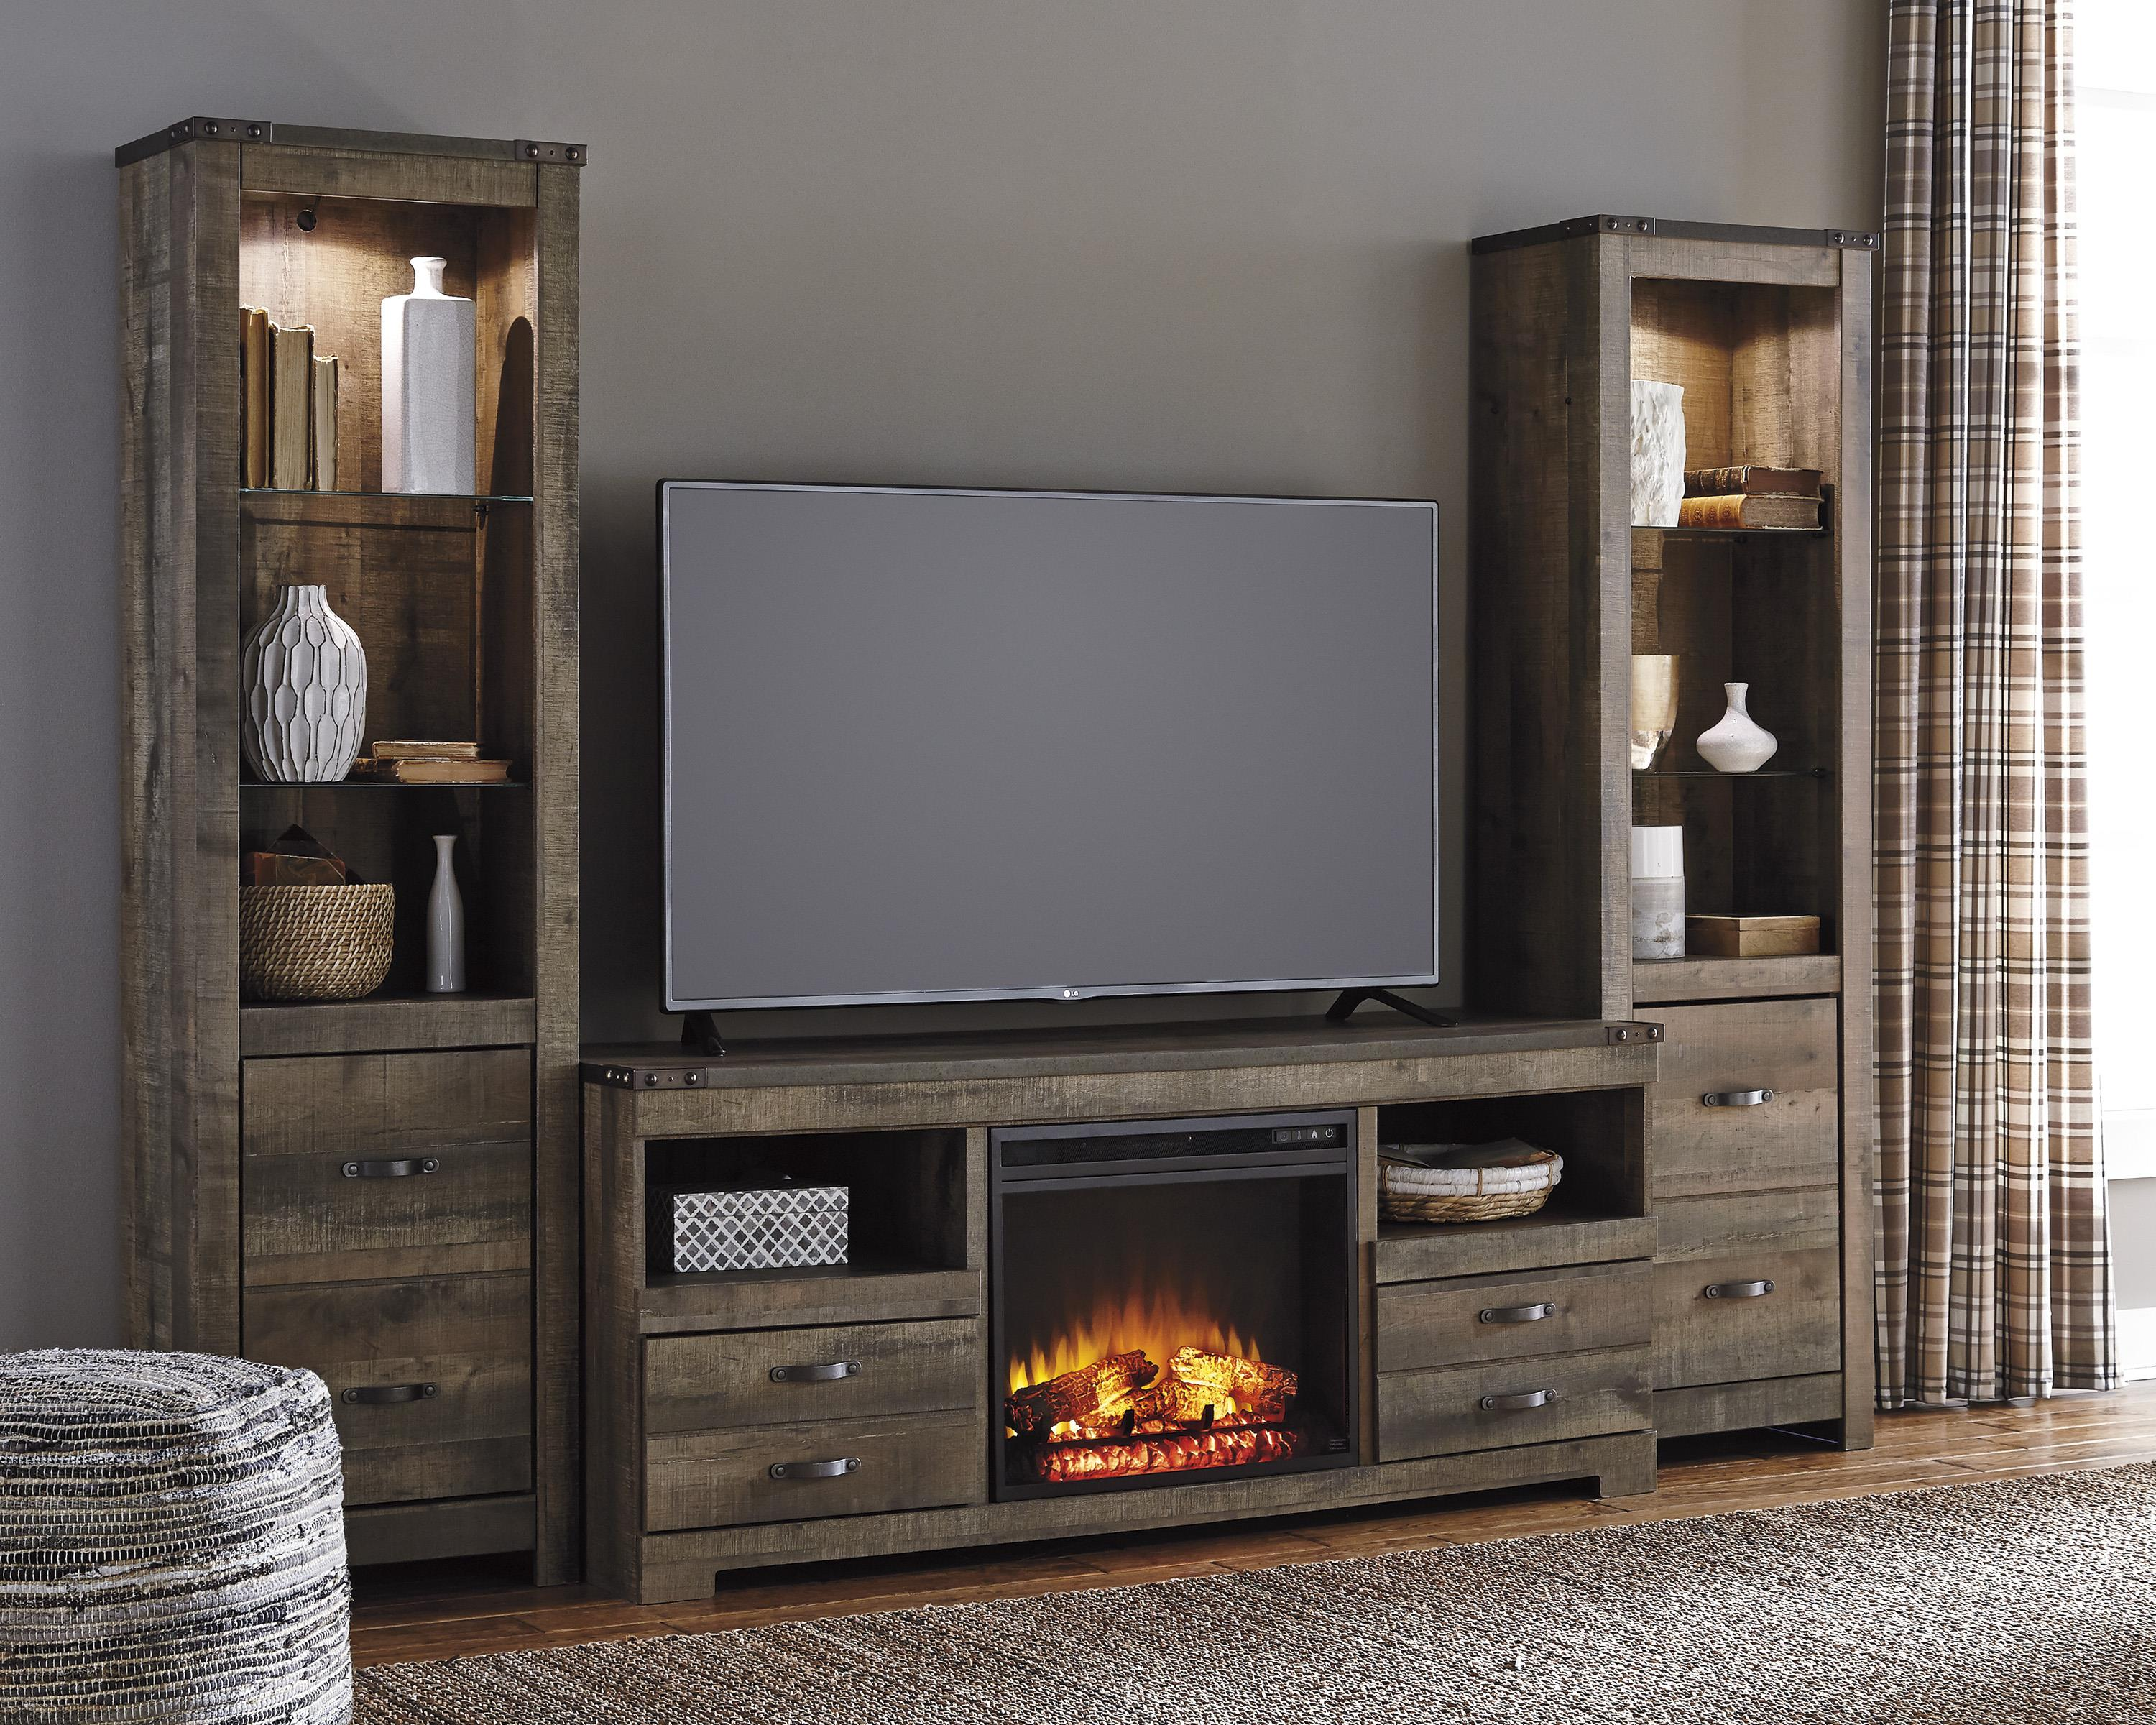 Rustic Large Tv Stand W Fireplace Insert Amp 2 Tall Piers